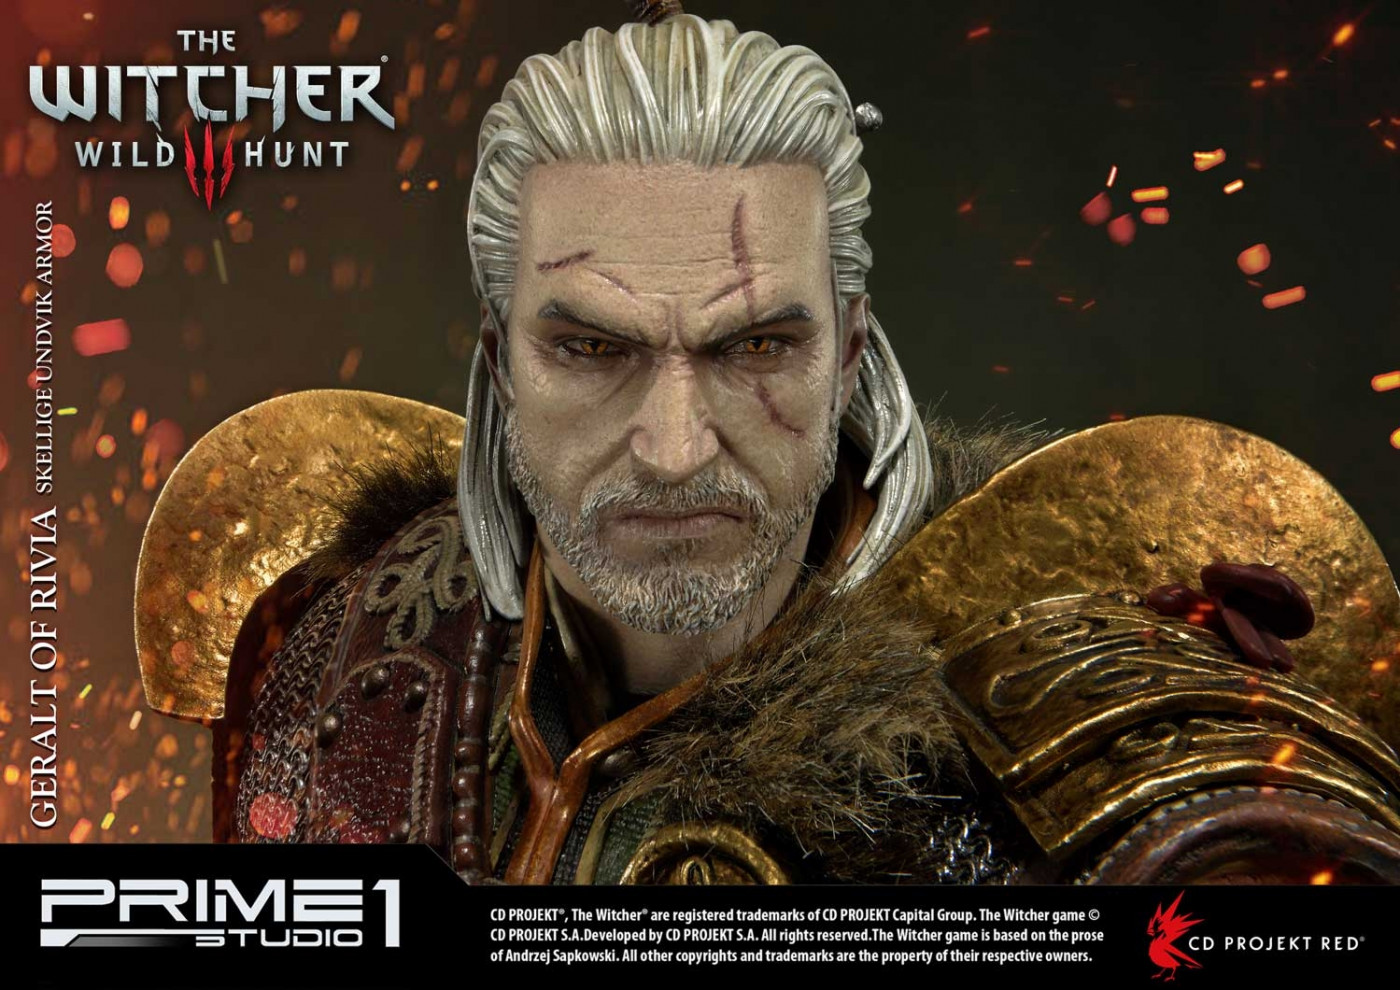 Premium Masterline The Witcher 3: Wild Hunt Geralt of Rivia Skellige Undvik Armor